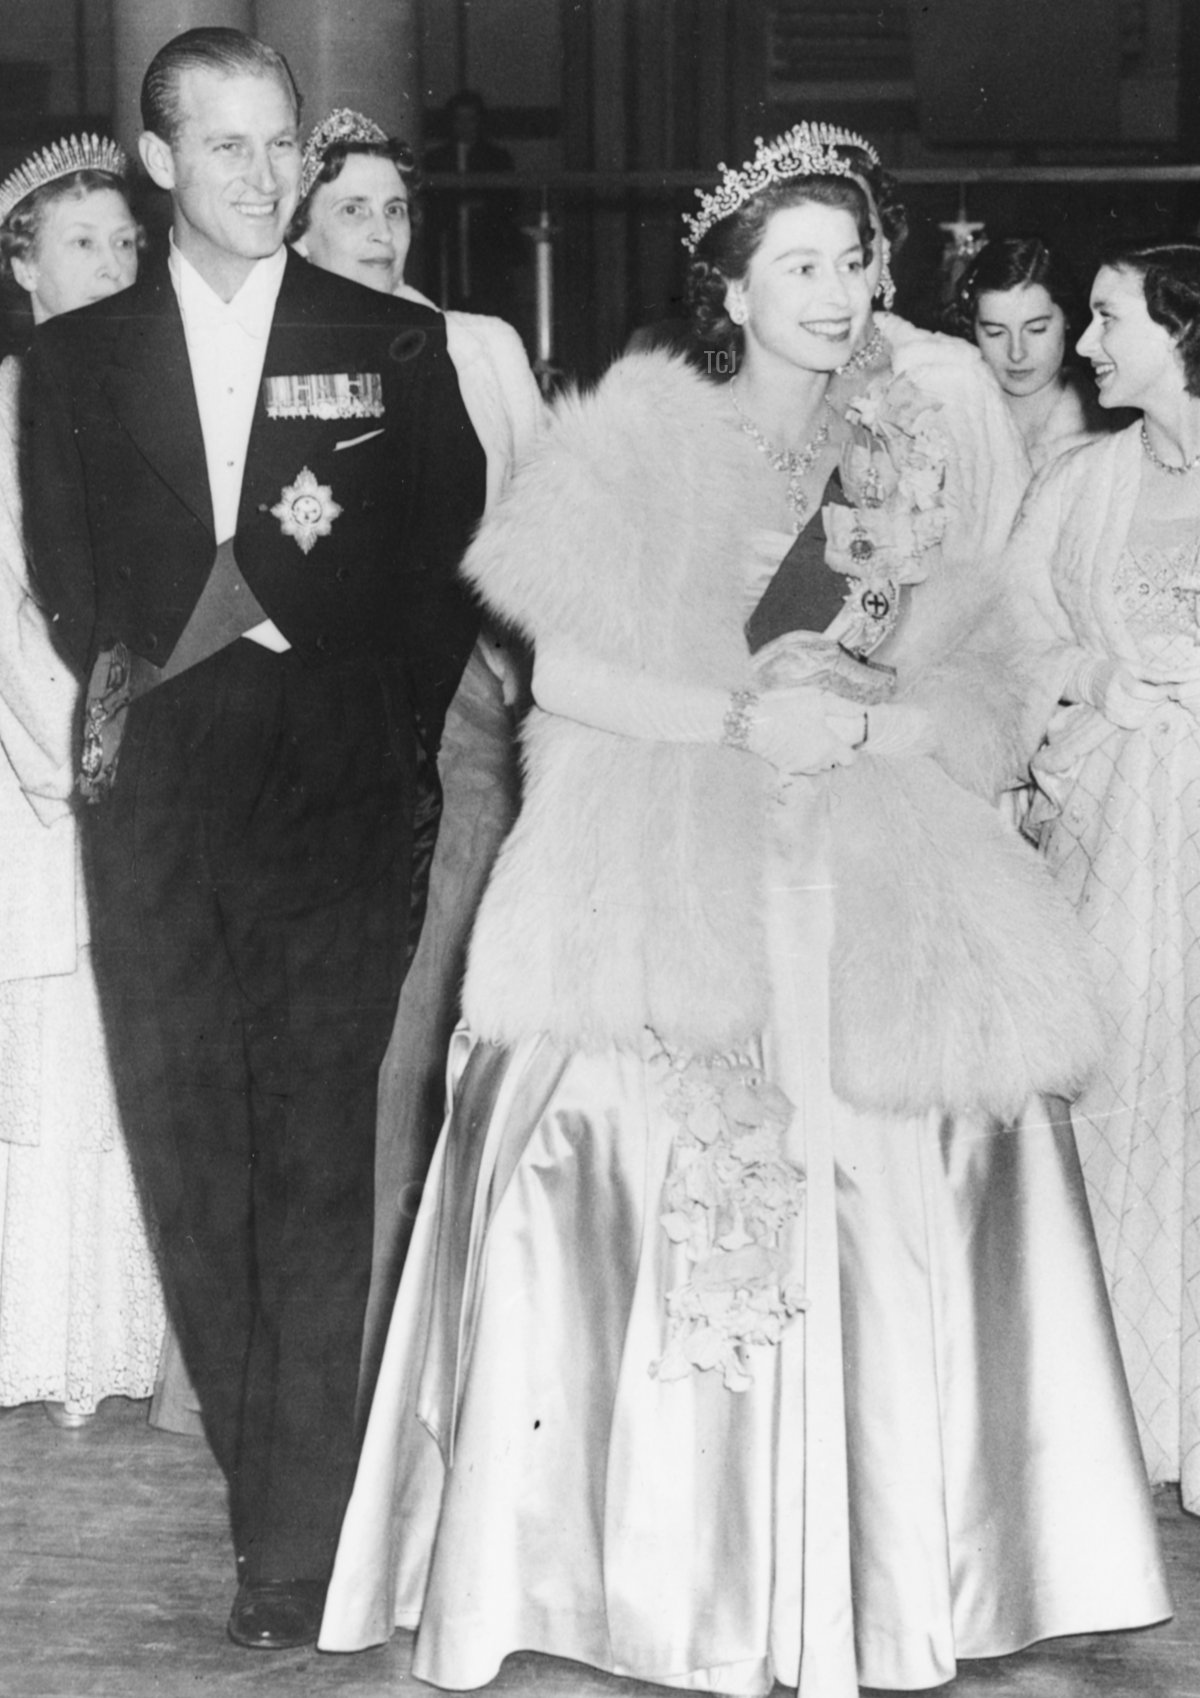 HM Queen Elizabeth II and Prince Philip, the Duke of Edinburgh, wearing formal dress as they attend a concert at Festival Hall, London, May 1951